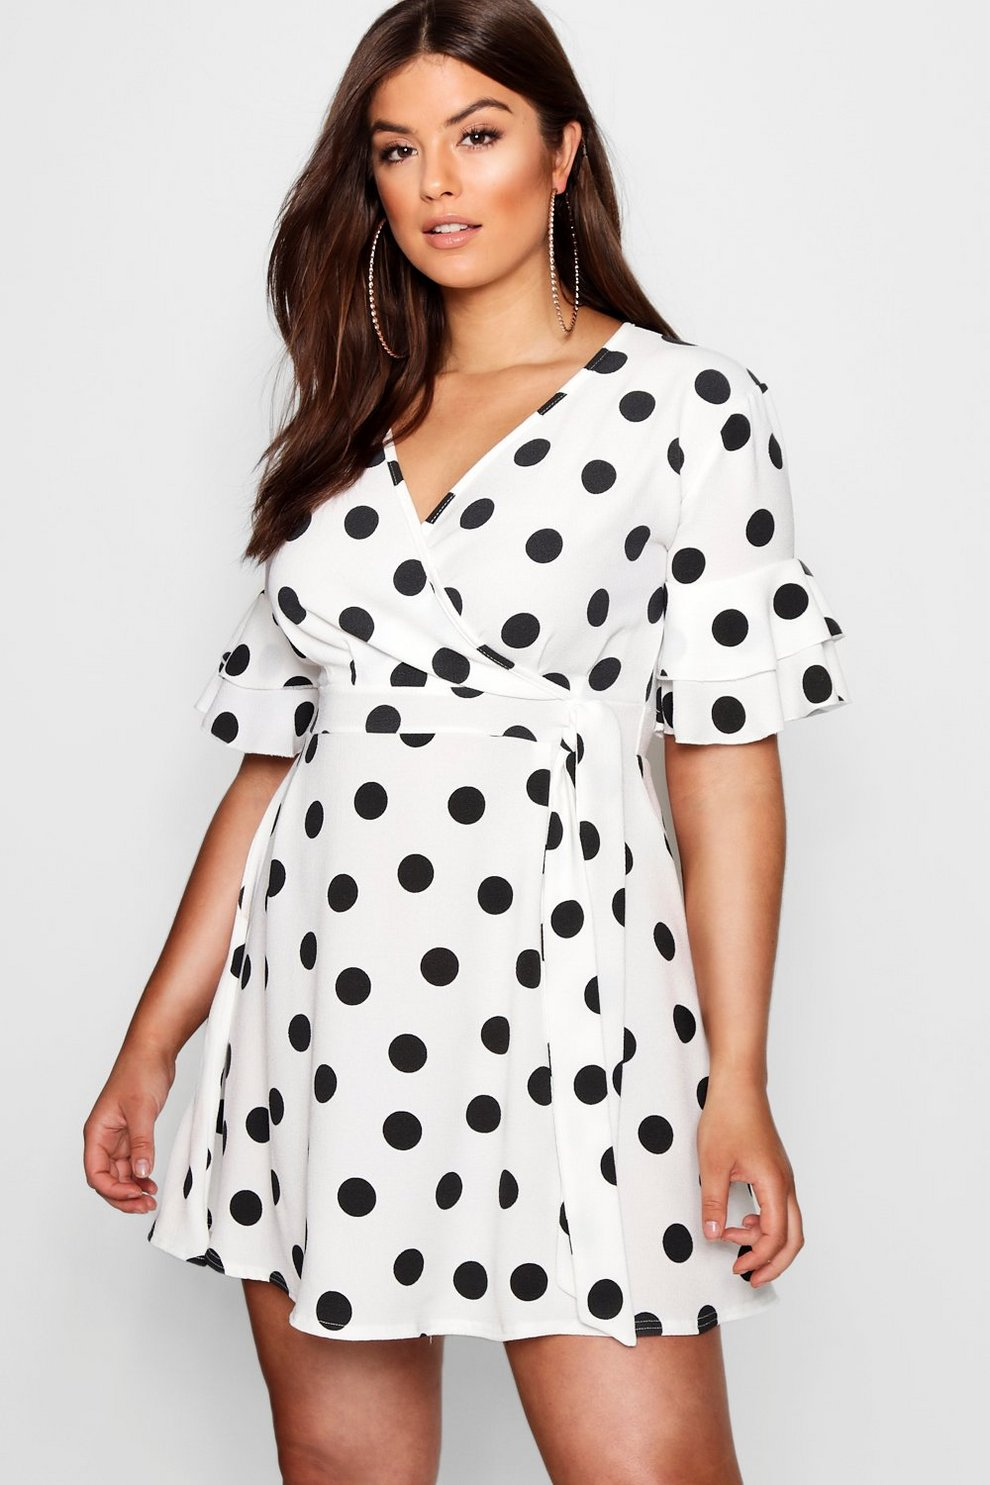 Big Discount Online Boohoo Plus Ruffle Sleeve Polka Dot Skater Dress Outlet Manchester Great Sale Low Cost Cheap Online Get To Buy Cheap Price Zg9ZKns